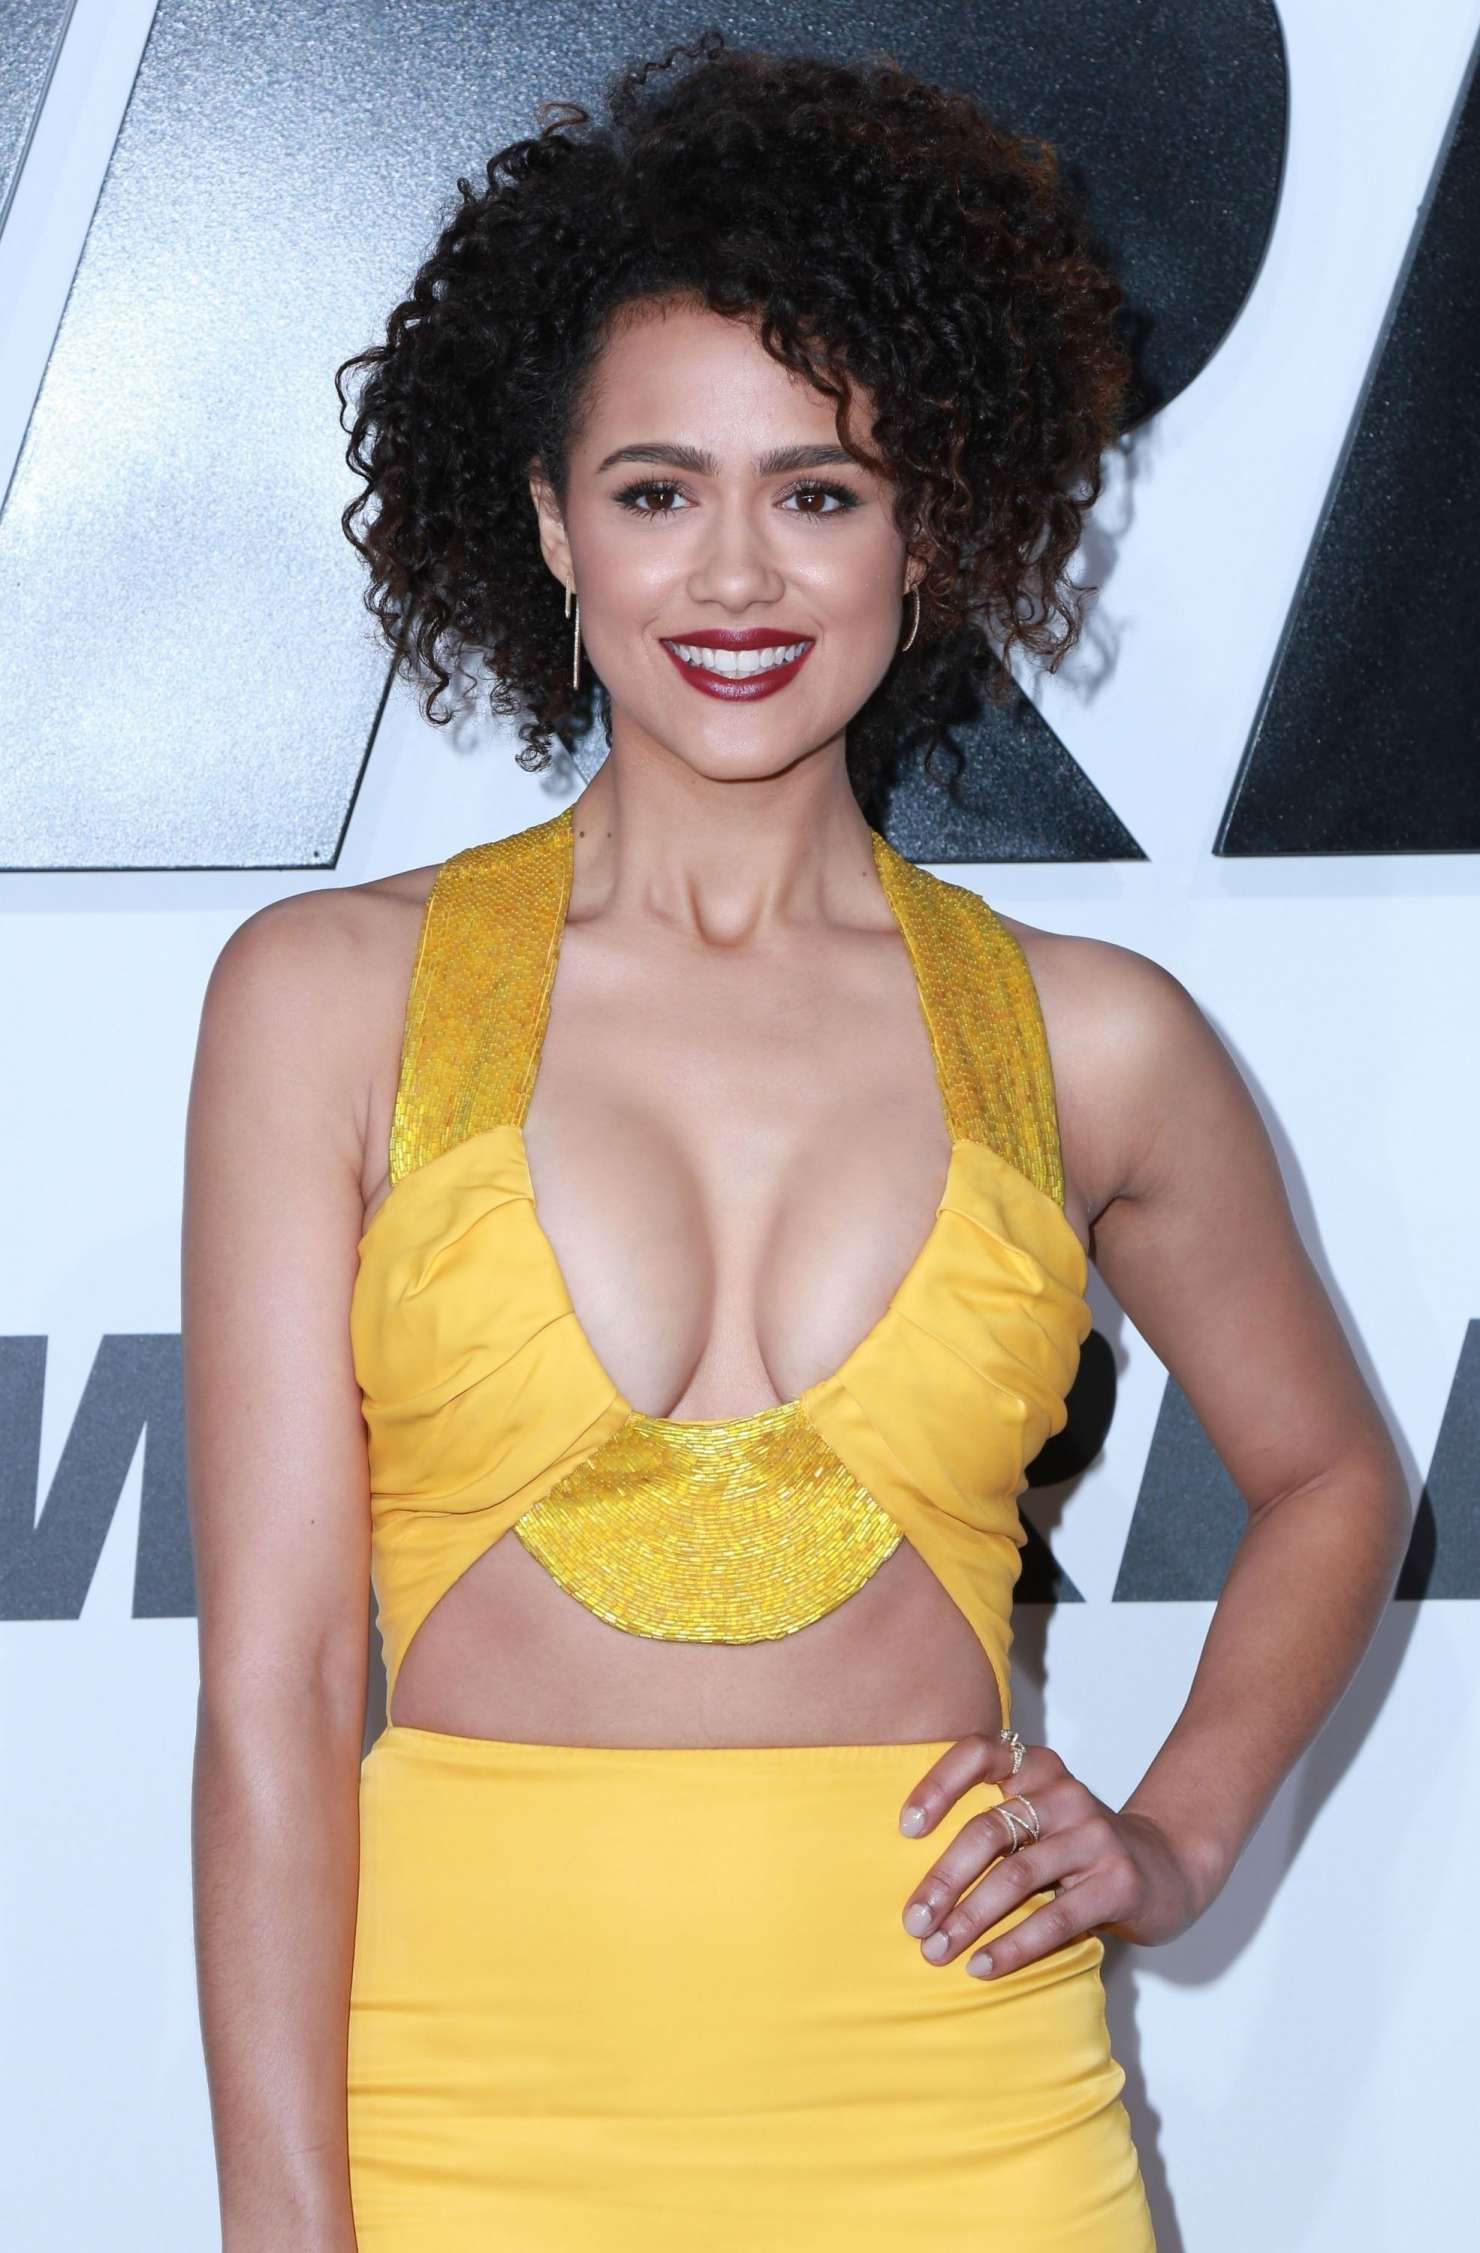 photo Nathalie Emmanuel (born 1989)